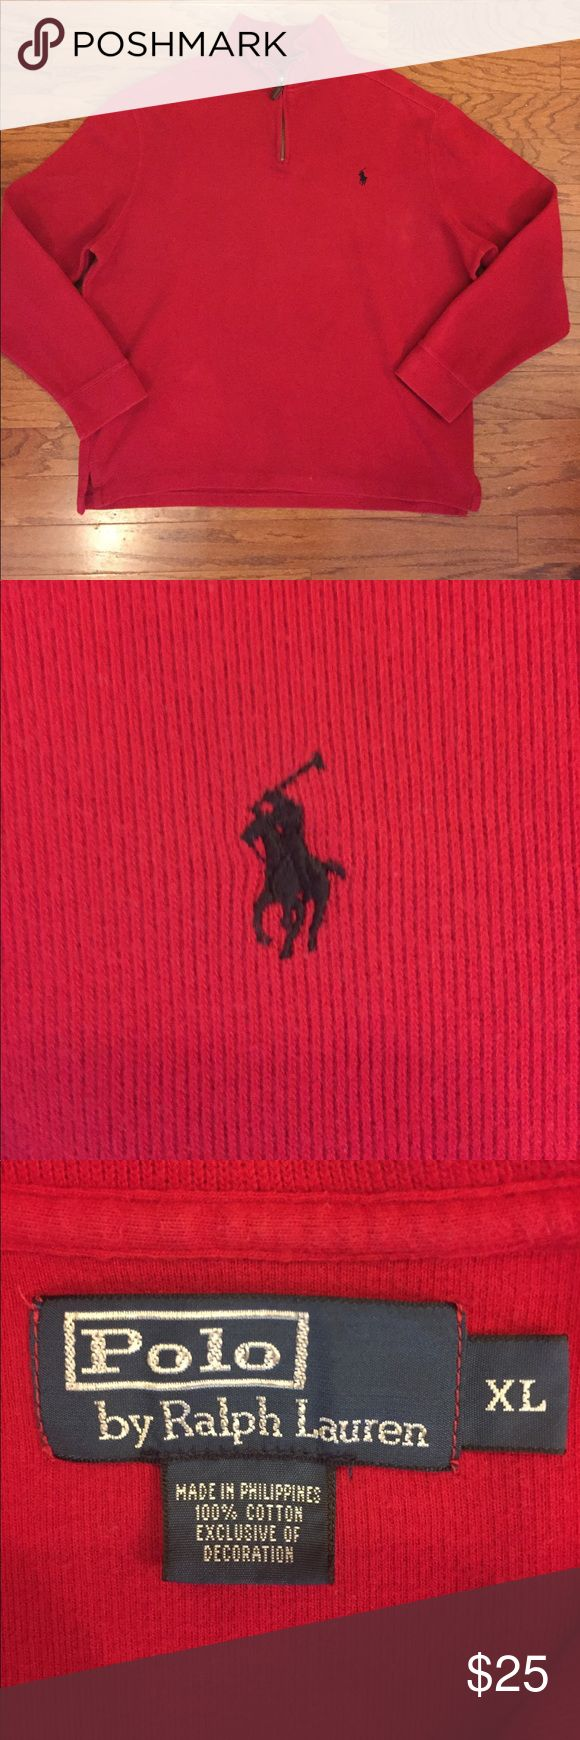 "Ralph Lauren Polo Pullover Good condition, gently worn, extremely small discoloration towards bottom of shirt (as seen in pic) not noticeable when wearing, otherwise in very good condition, dark red color, with a black Polo horse logo, 100% cotton material, men's size x-large, measures about 26 1/2"" pit to pit, 29"" top to bottom and  25"" shoulder to cuff, very classic style pullover. Polo by Ralph Lauren Sweaters"